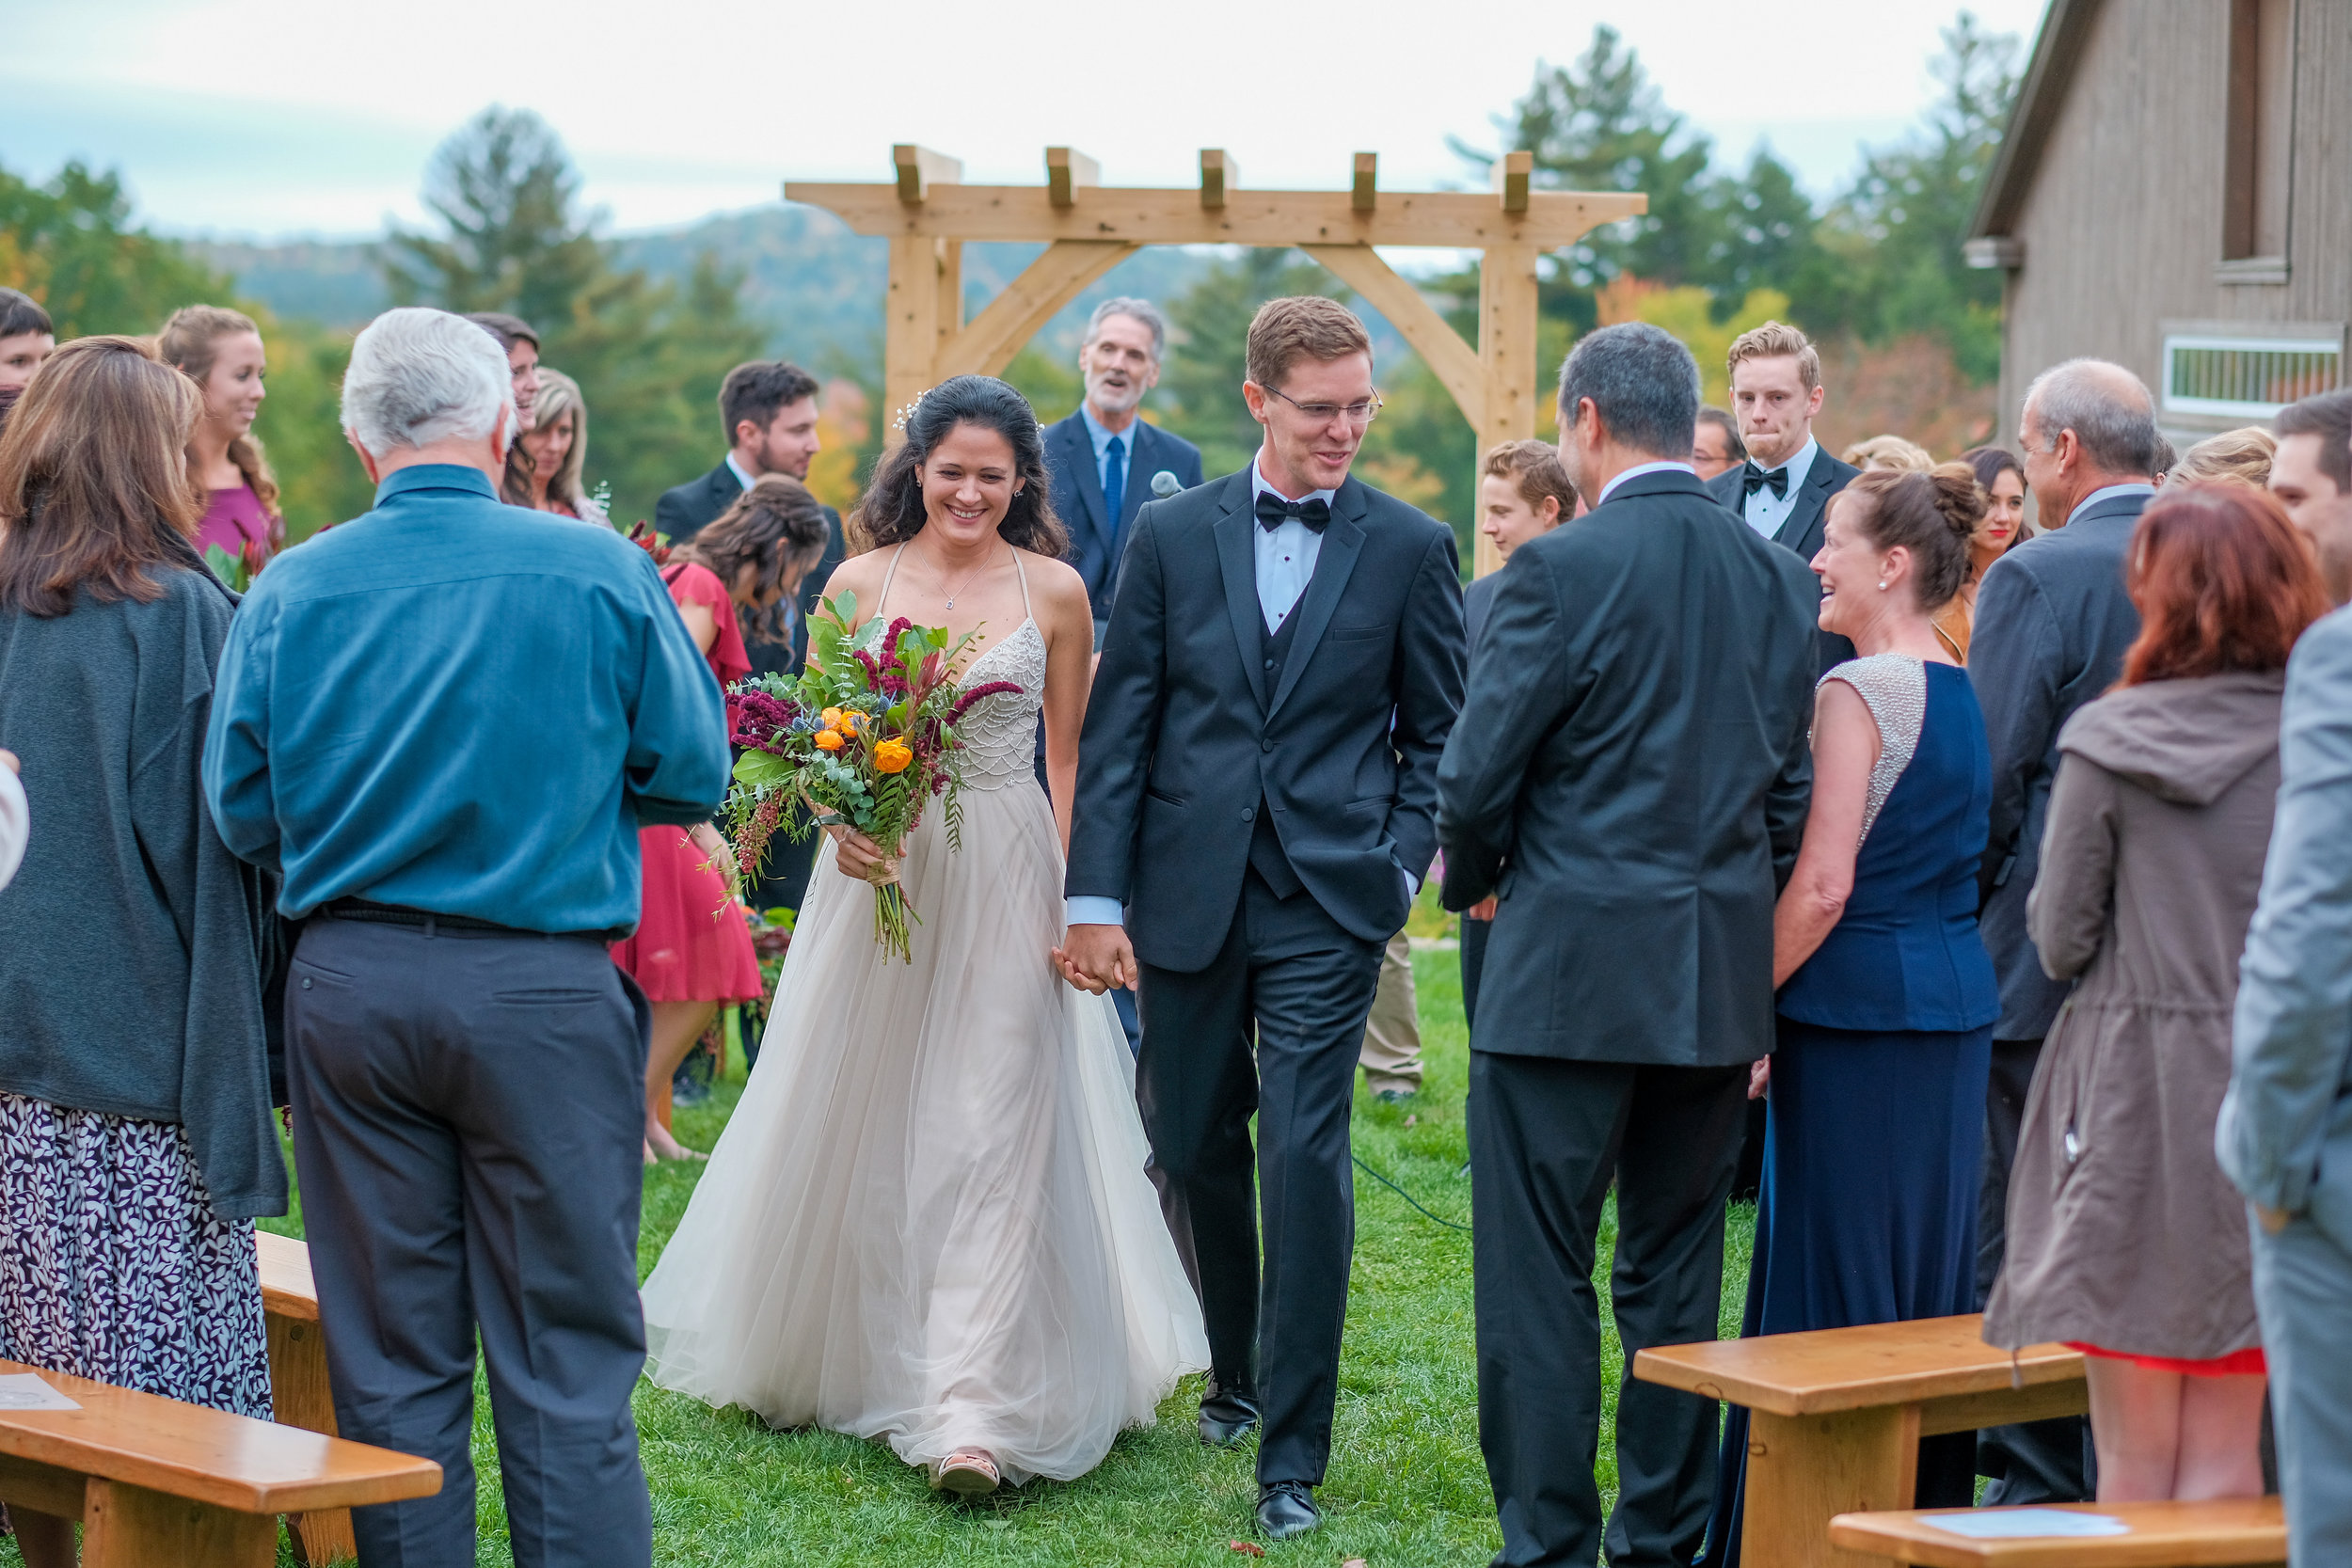 Locke-Falls-Farm-wedding-photography-740.jpg